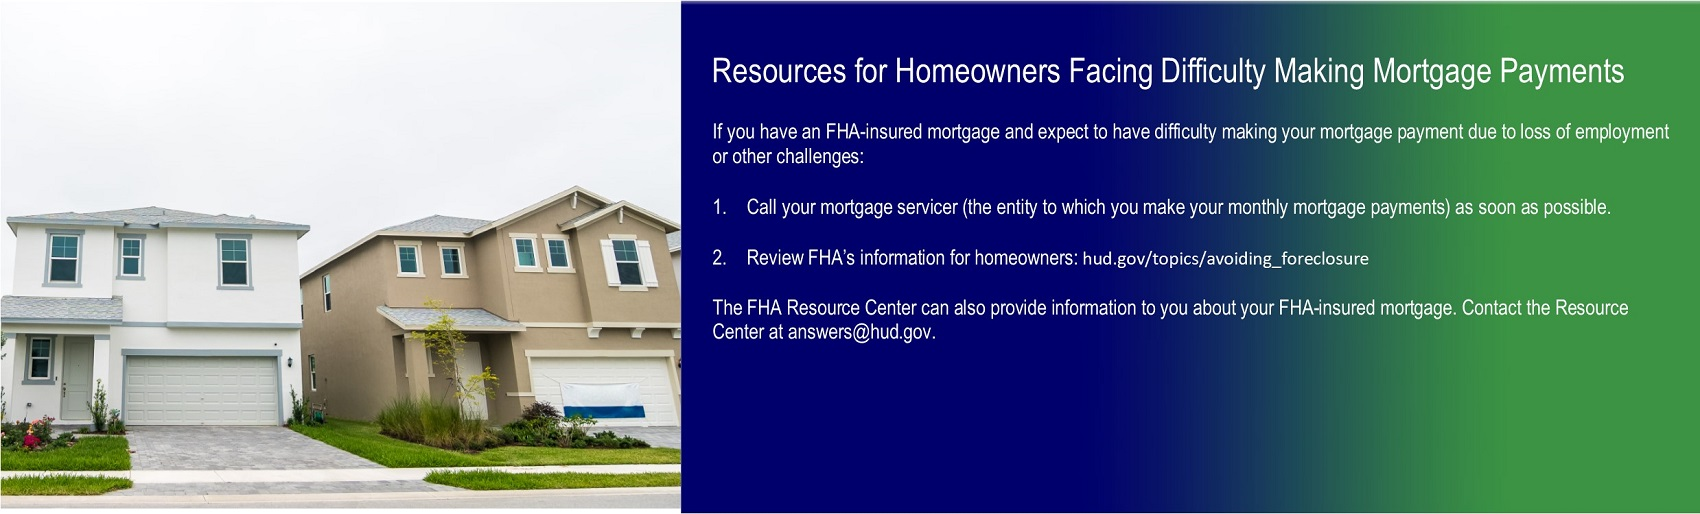 Resources for Homeowners Facing Difficulty Making Mortgage Payments. HUD Photo